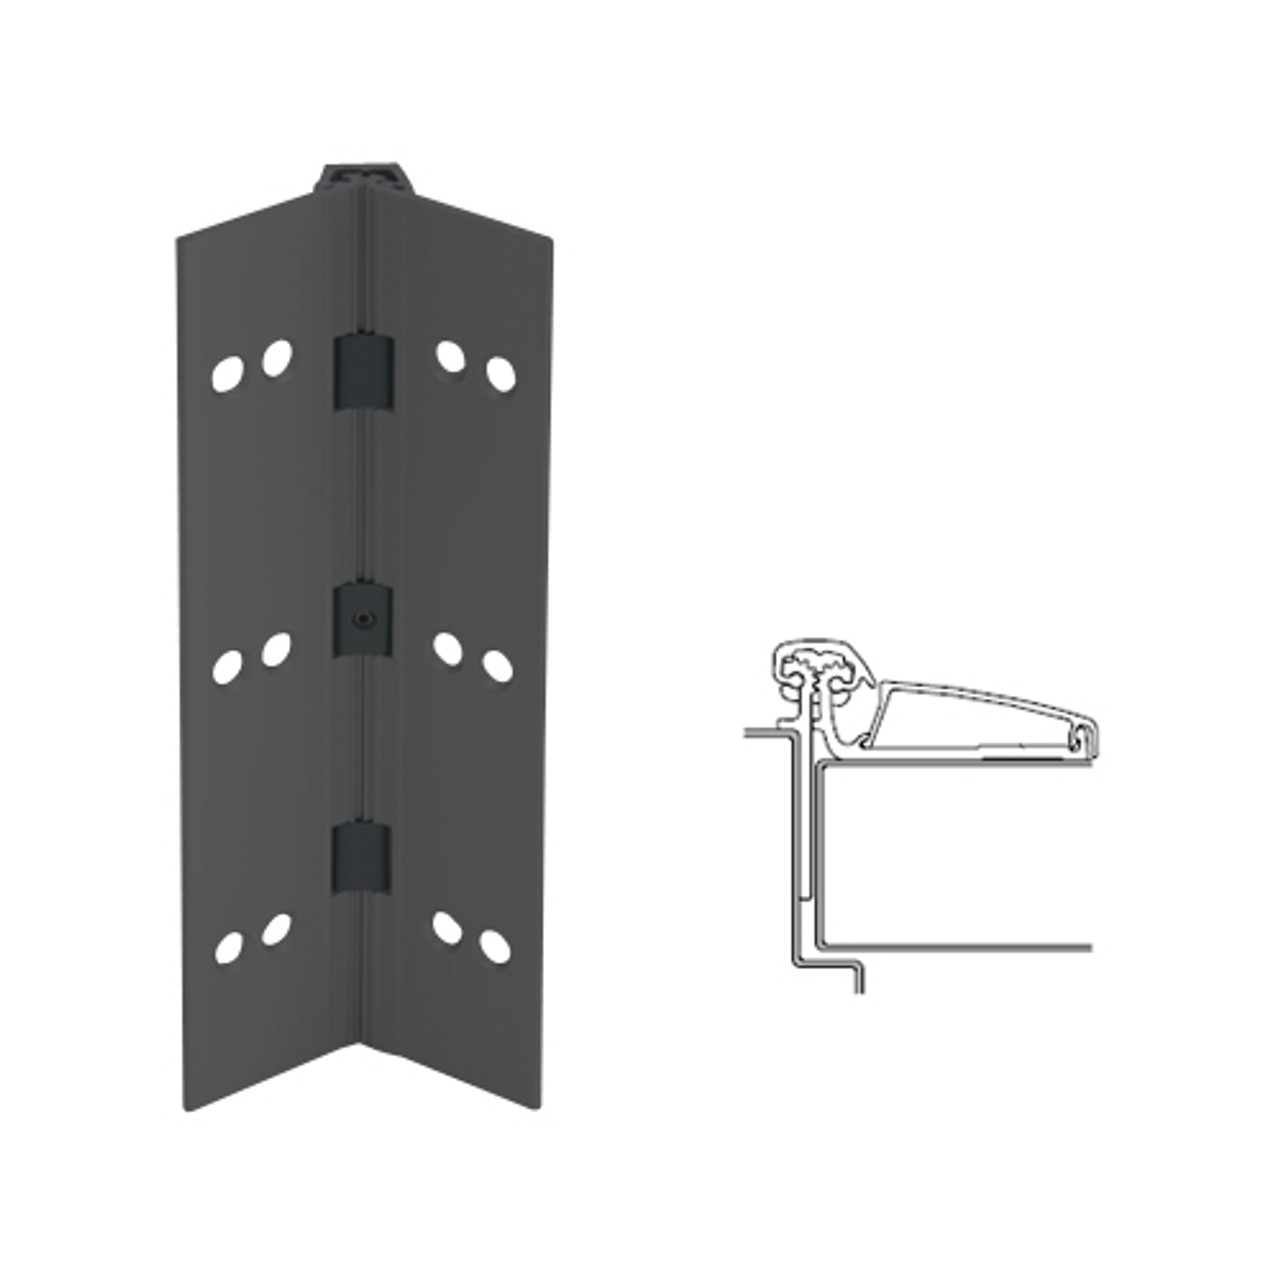 045XY-315AN-120-WD IVES Adjustable Half Surface Continuous Geared Hinges with Wood Screws in Anodized Black